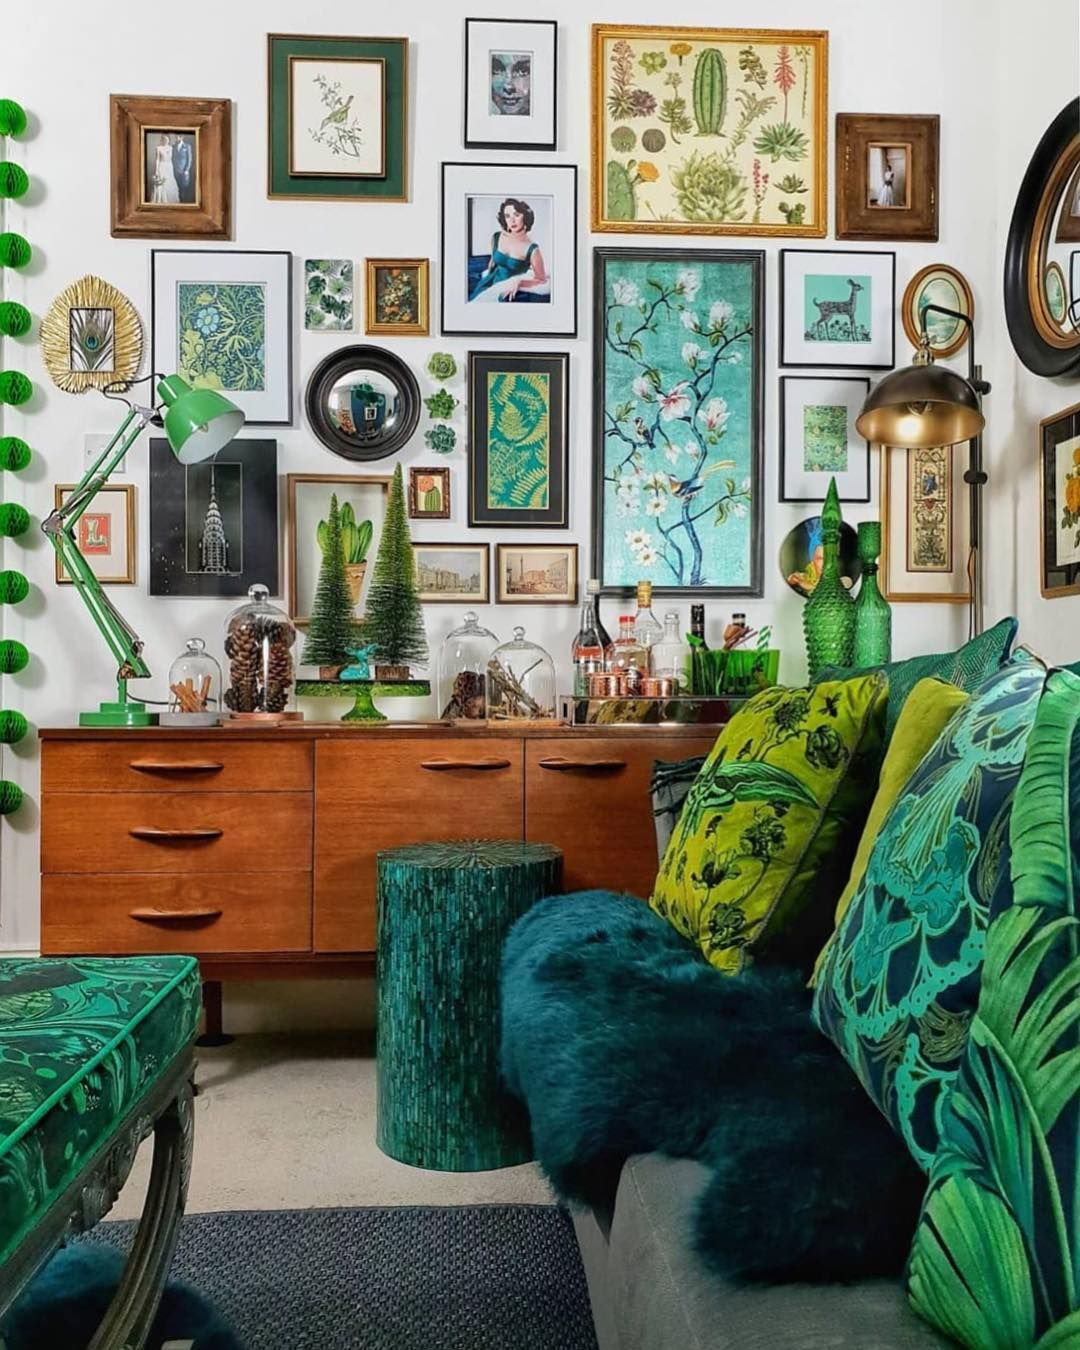 Best bohemian decor on instagram  cthe purest and most thoughtful minds are those also house interior stuff images in rh pinterest